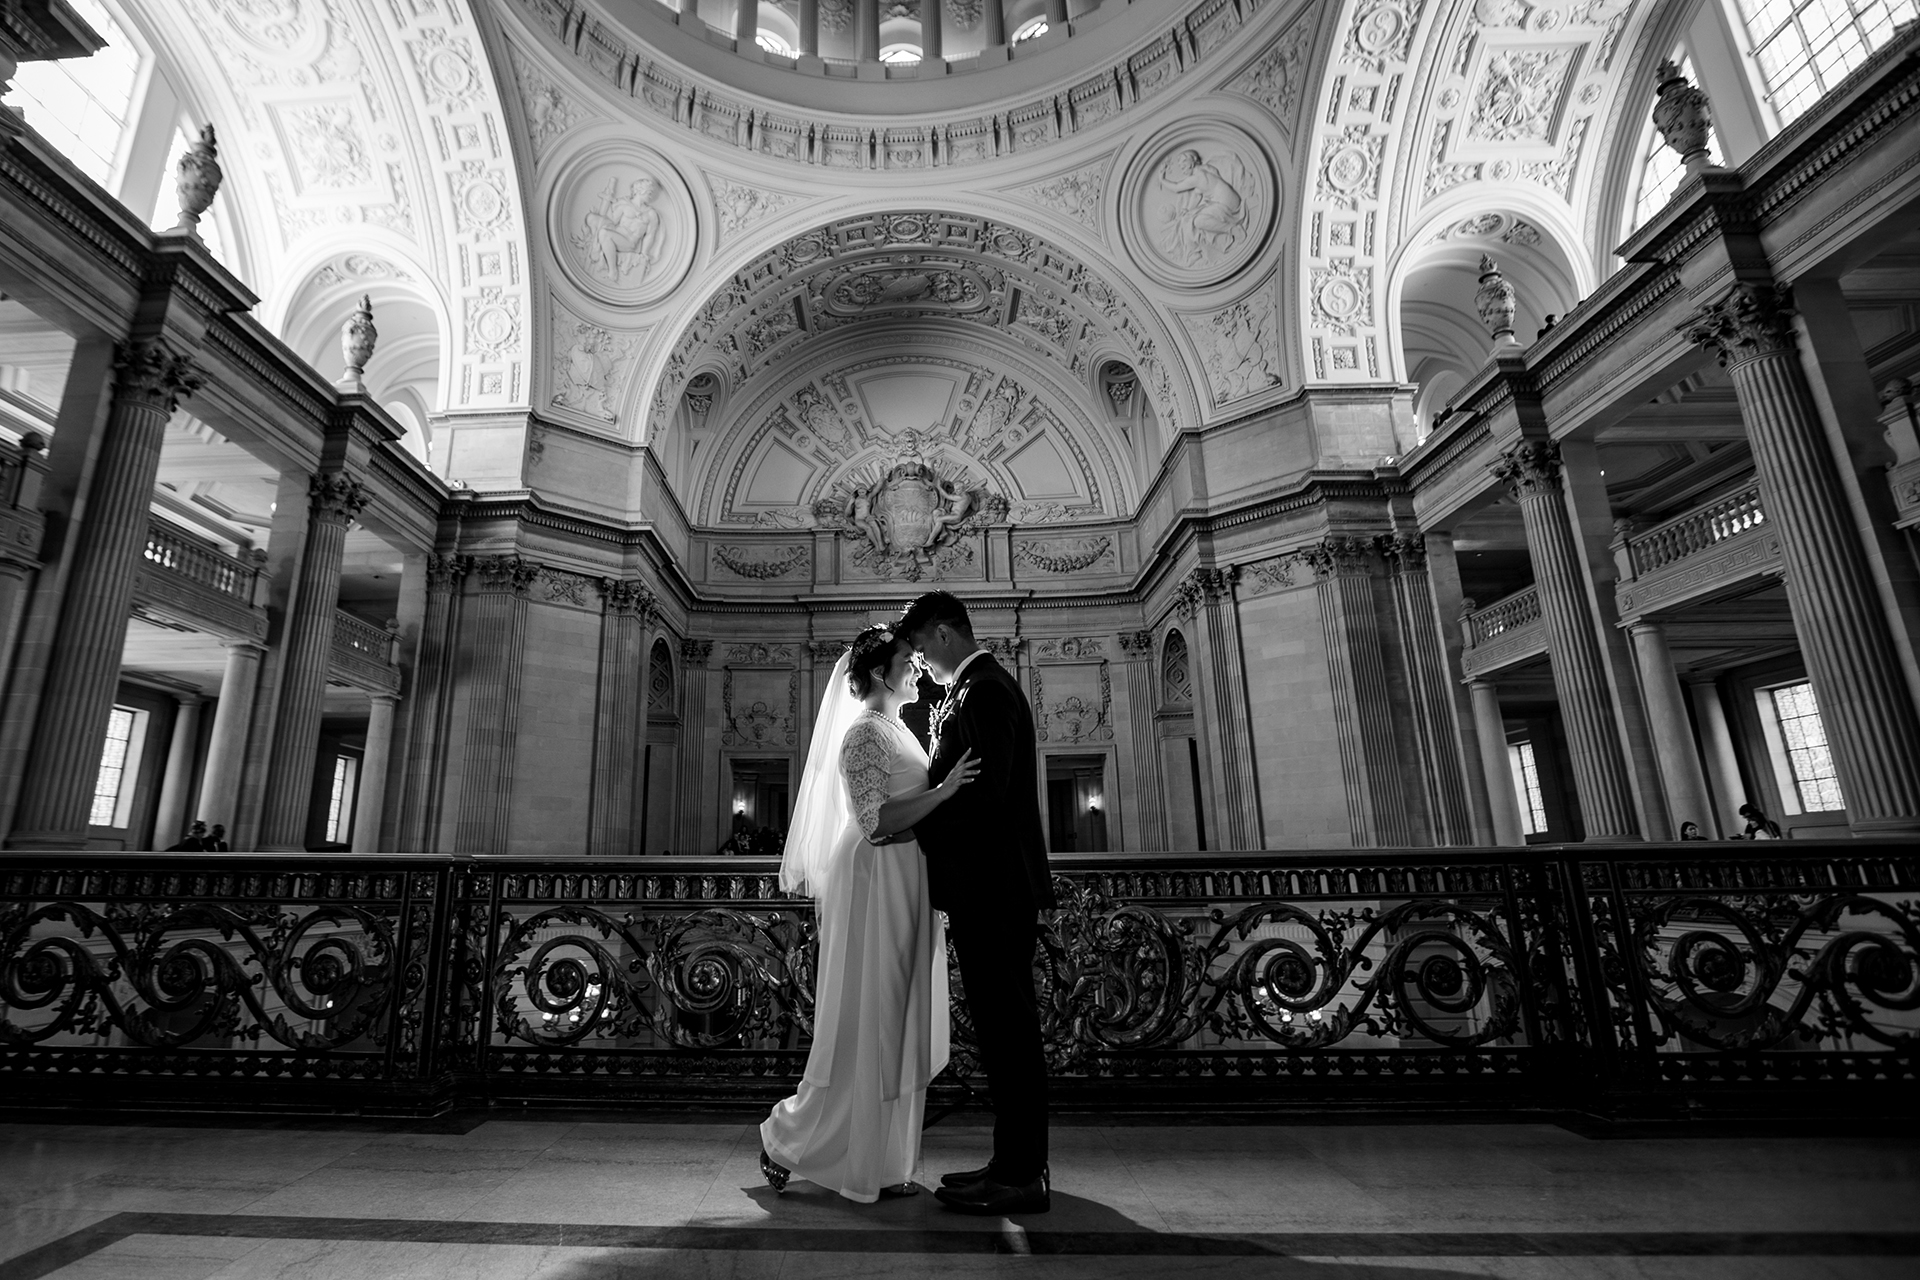 San Francisco City Hall Wedding and Elopement Photography | The City Hall made for an architecturally stunning location